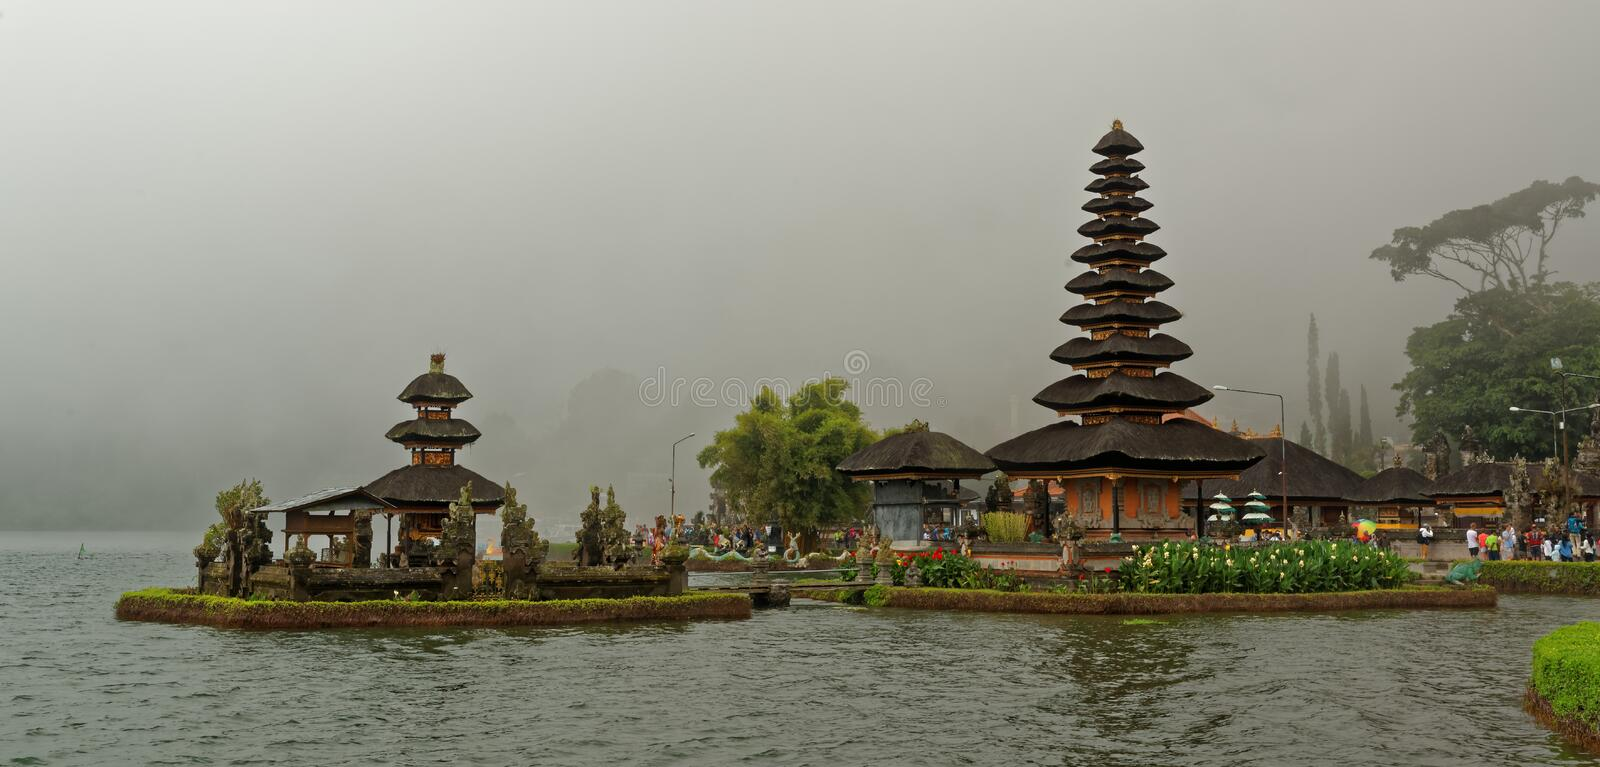 Bratan Temple in Bali. Pura Ulun Danu Beratan, or Pura Bratan, is a major Shaivite water temple on Bali, Indonesia. The temple complex is located on the shores stock images